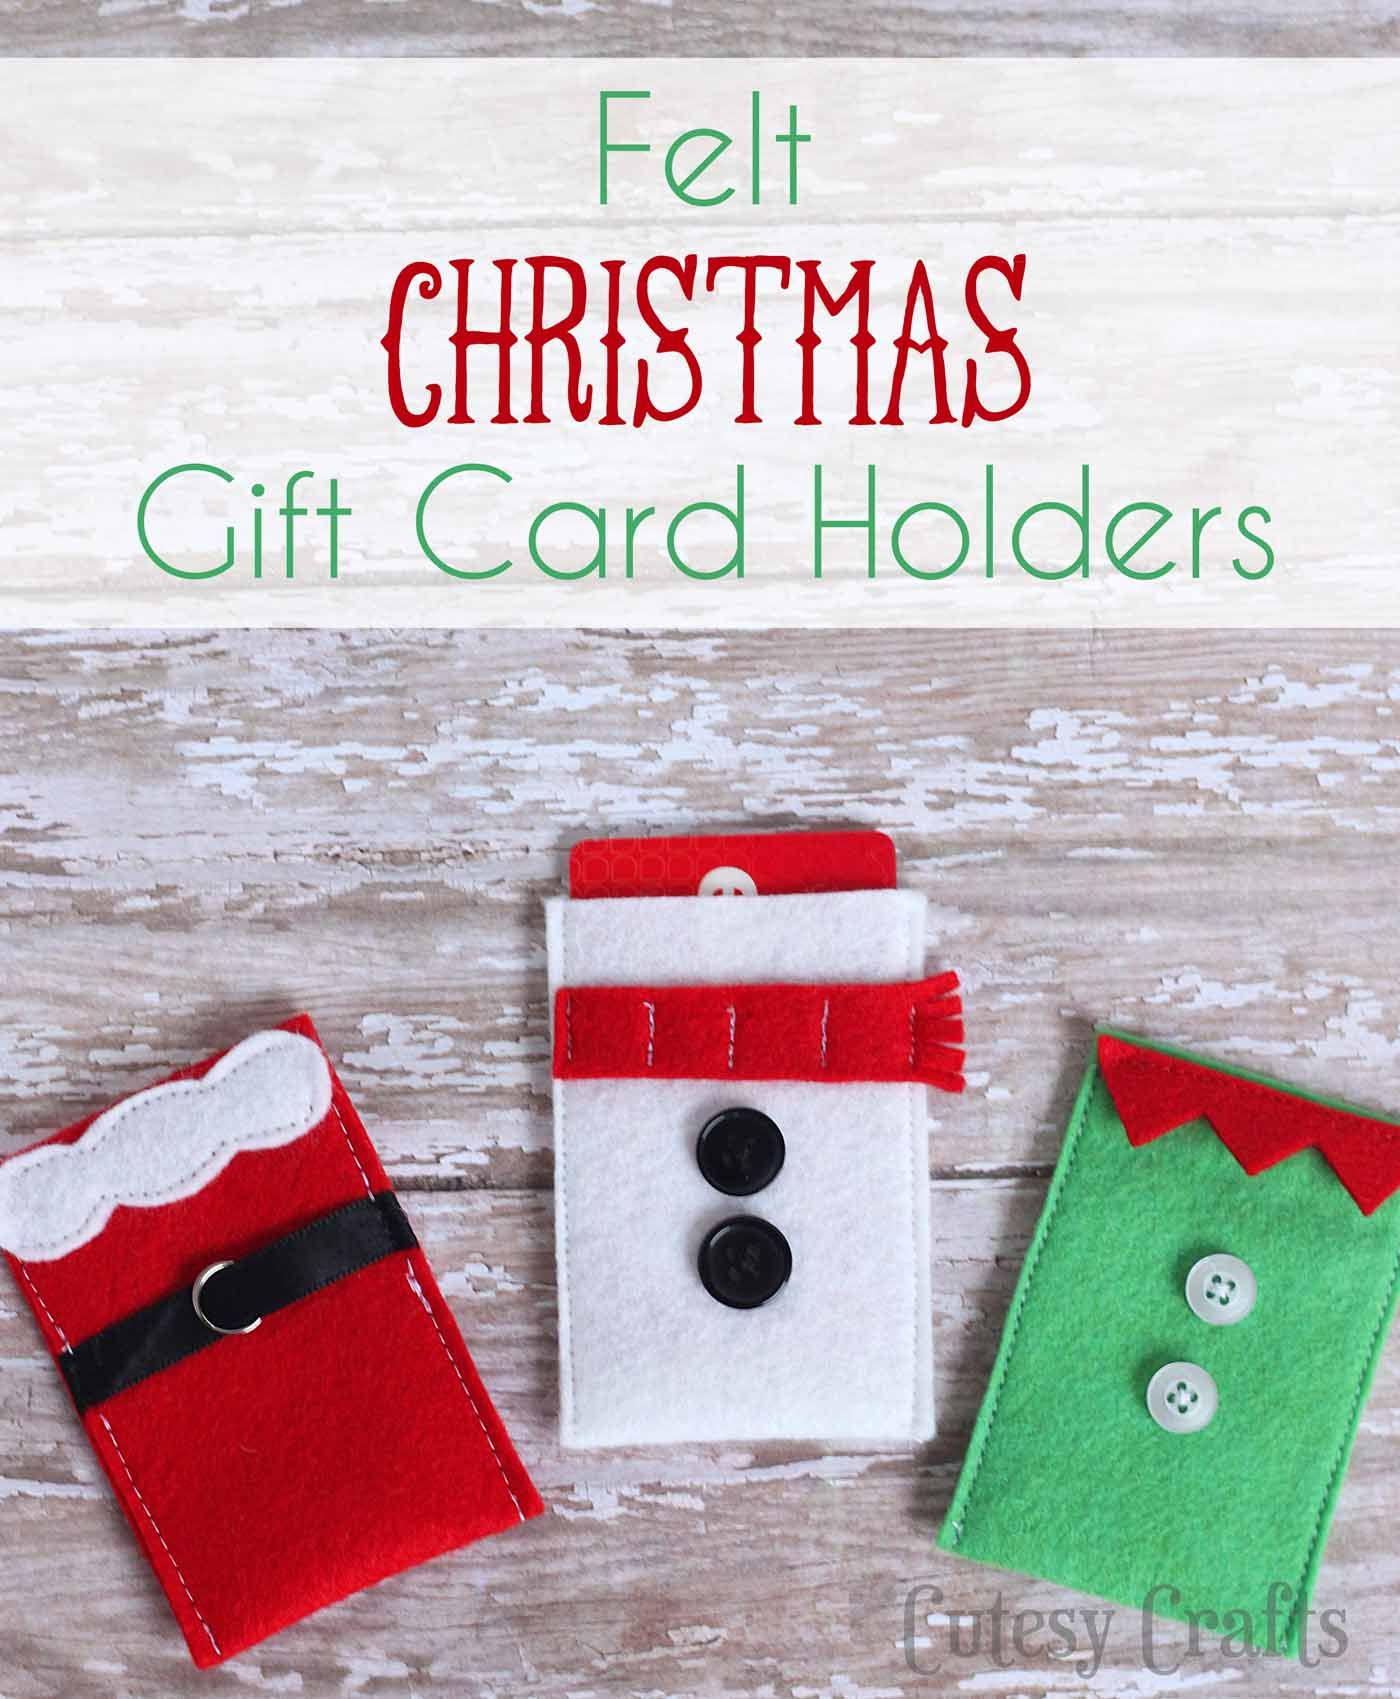 Felt Character Christmas Gift Card Holders | The One-Stop DIY Shop ...